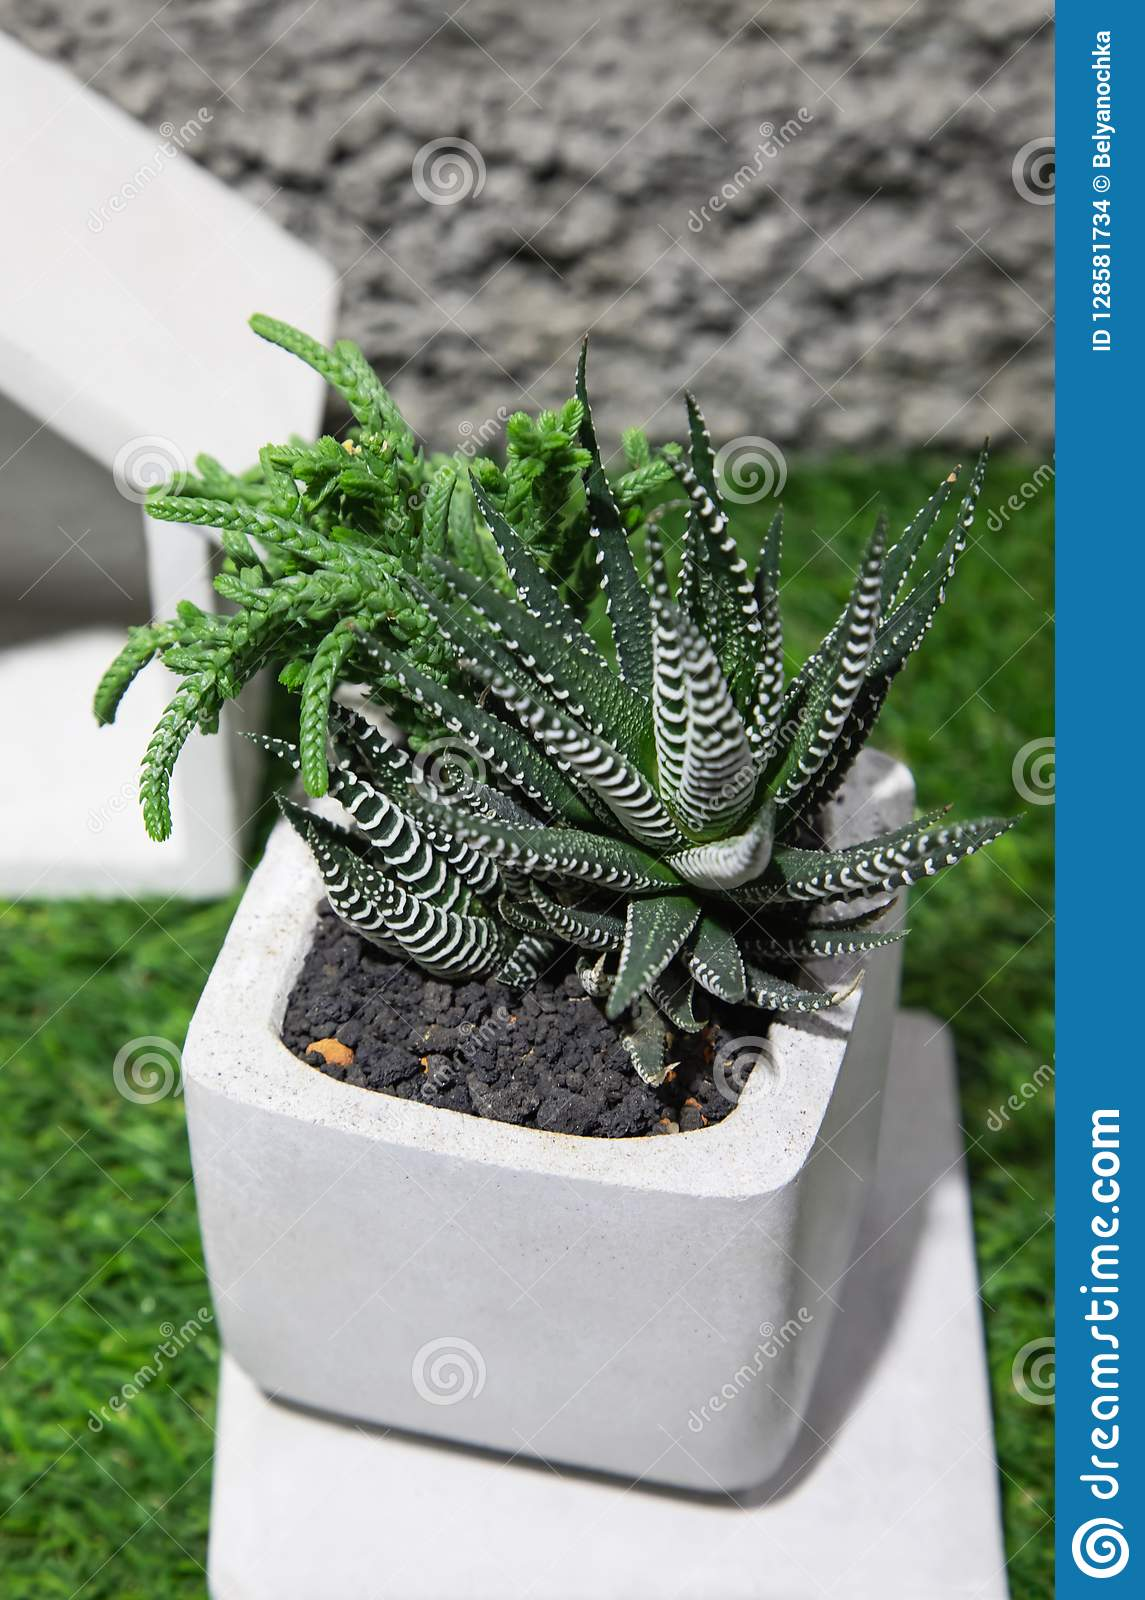 Small Cactus Succulents In Pot Stock Photo Image Of Outdoor Gardening 128581734